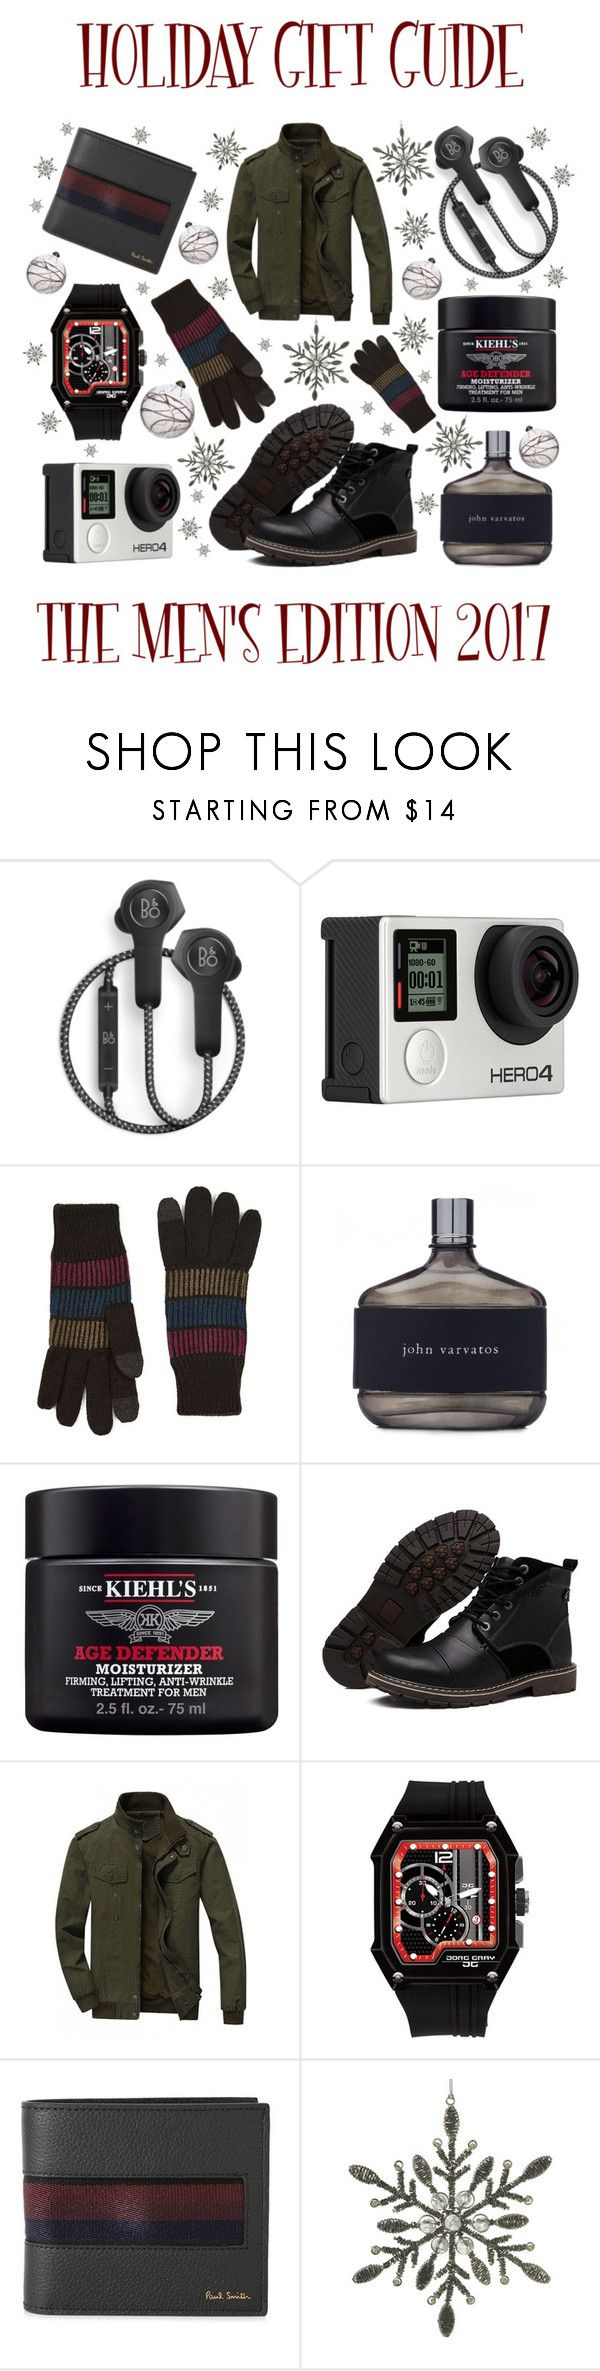 Holiday Gift Guide: The Men's Edition by latoyacl on Polyvore featuring Jorg Gray, Paul Smith, Billabong, B&O Play, Topman, John Varvatos, Kiehl's, Parlane, Shishi and men's fashion